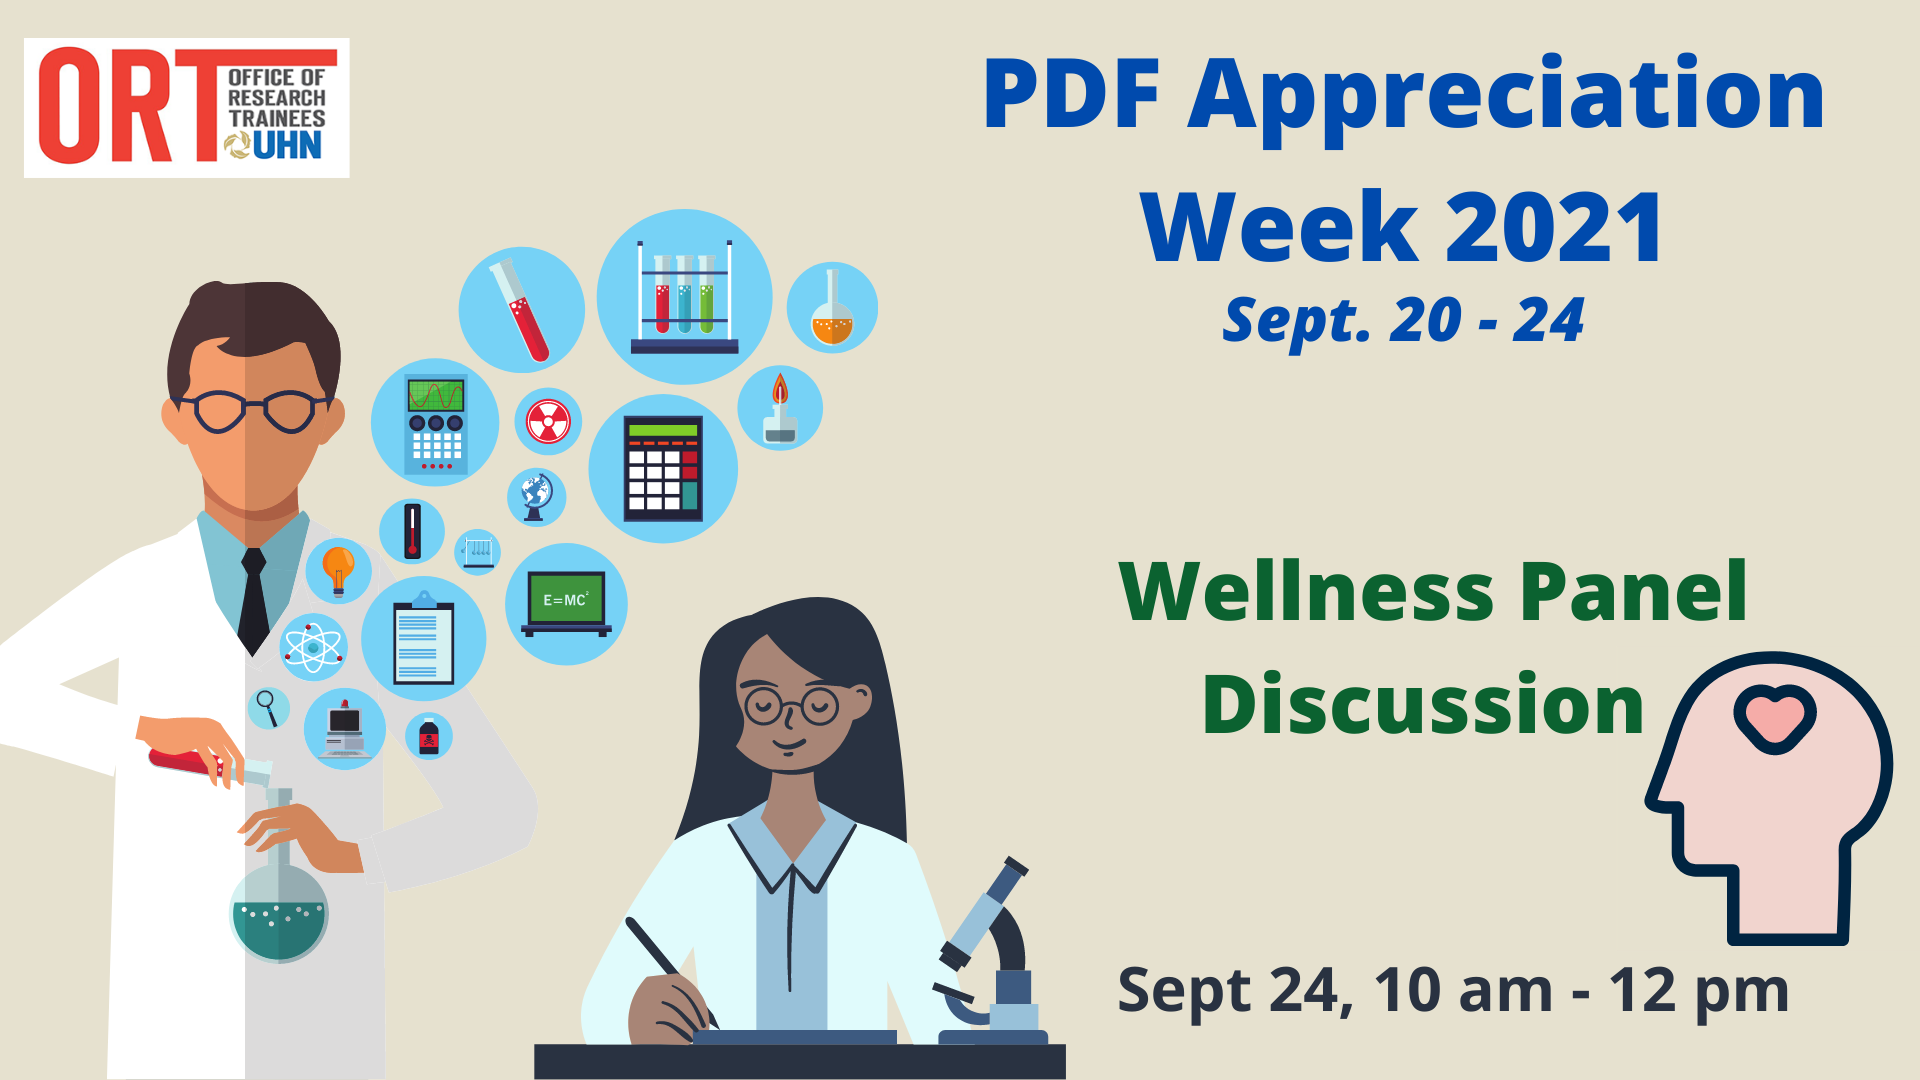 A PDF Appreciation Week 2021 poster. Sept 20-24. Wellness Panel Discussion. September 24 10 am - 12 pm. An image of a head with a heart where the brain should be is seen on the right. Two scientists are pictured on the left.